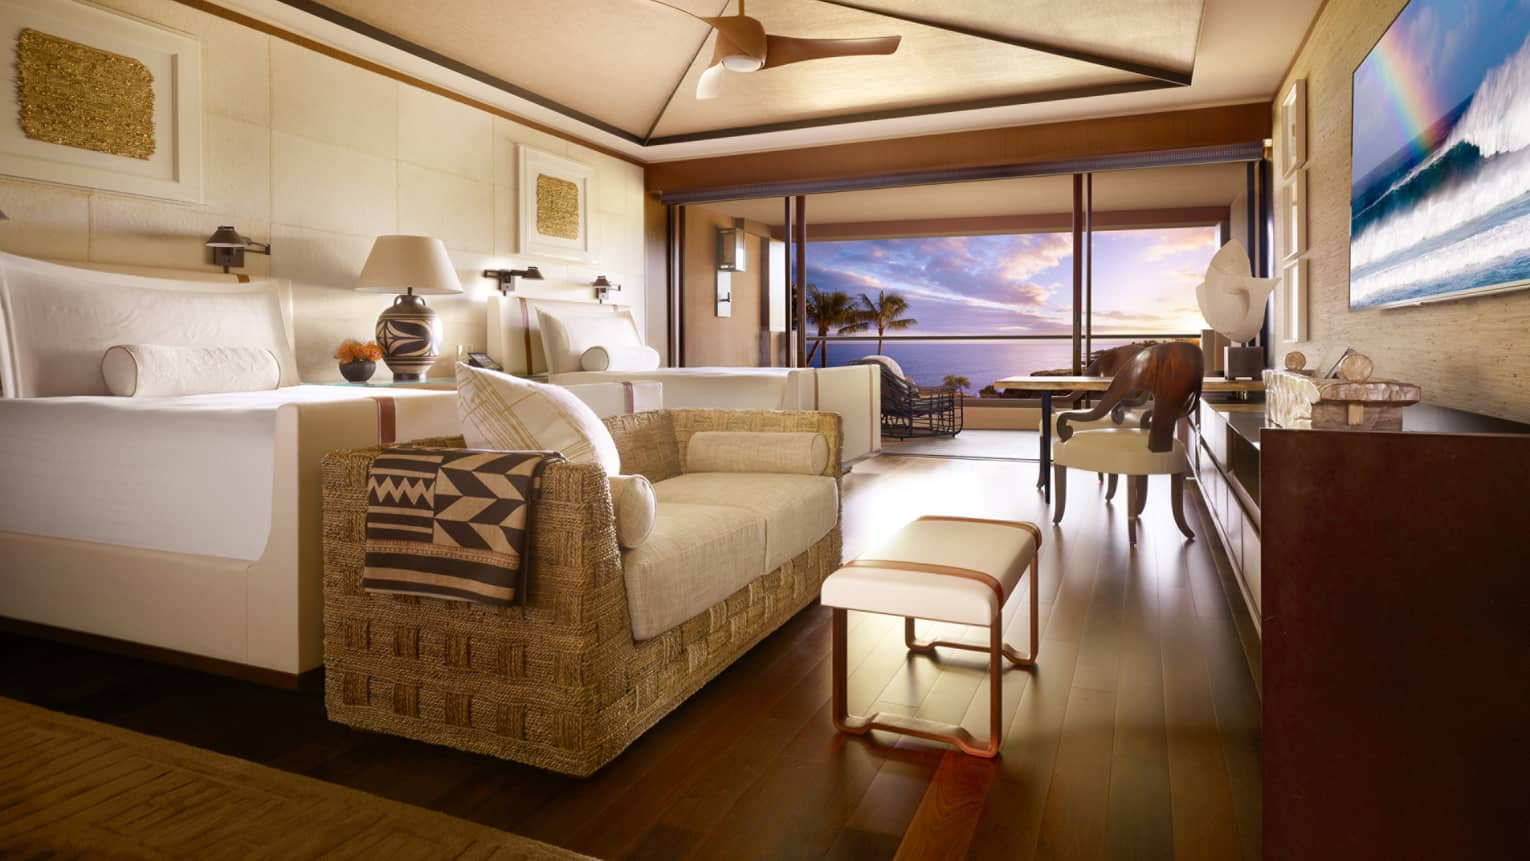 Wooden floors and light decor complete oceanview rooms at Lanai's Four Seasons Resort